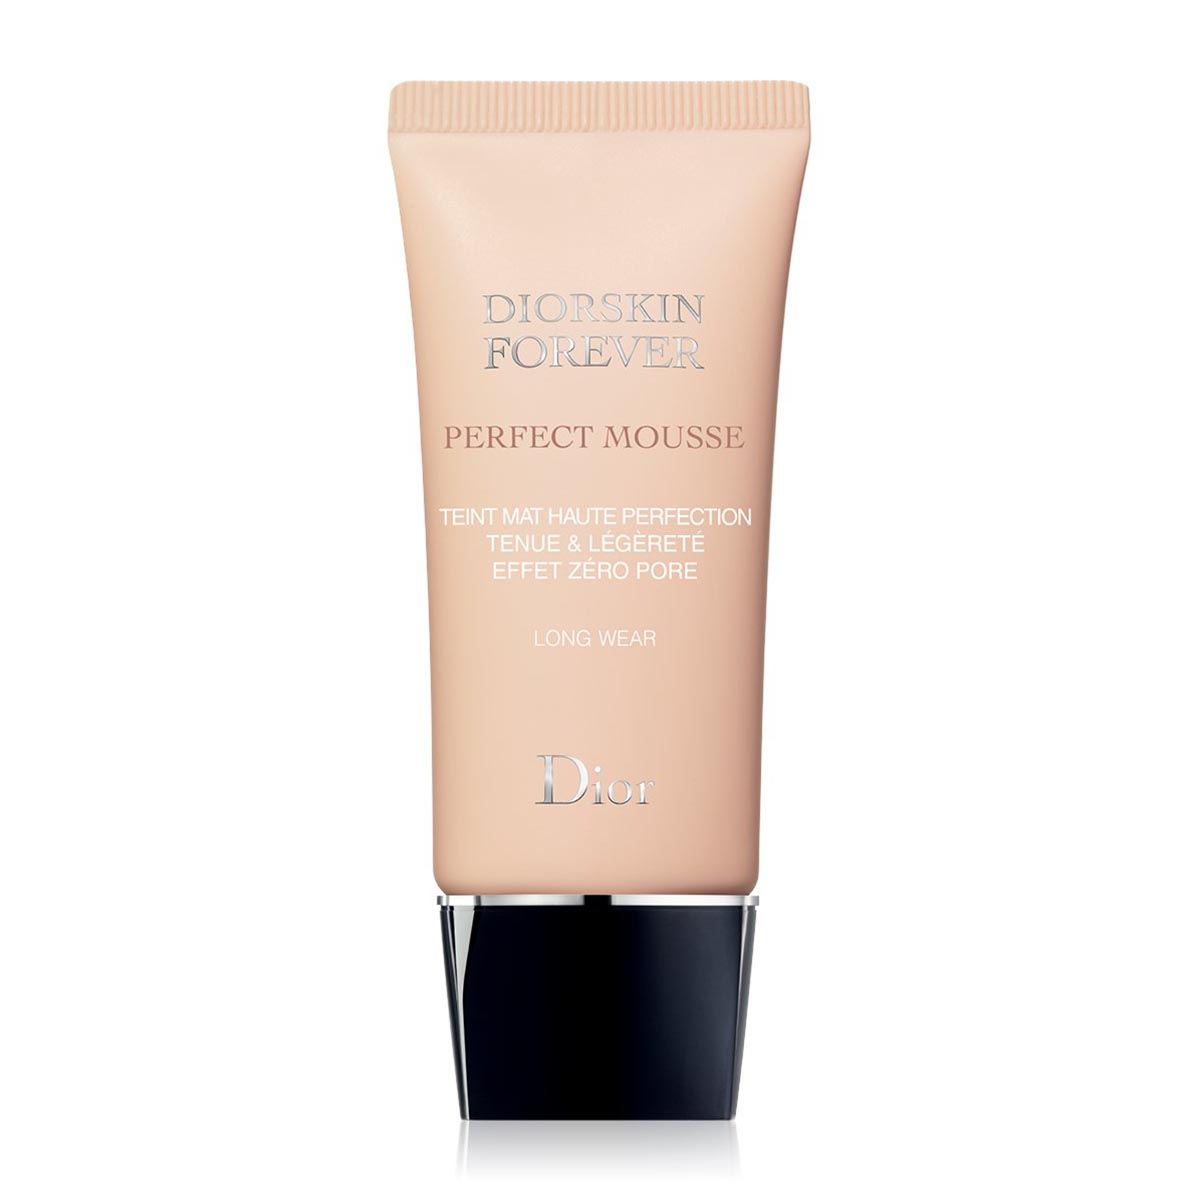 Dior diorskin forever perfect mousse 020